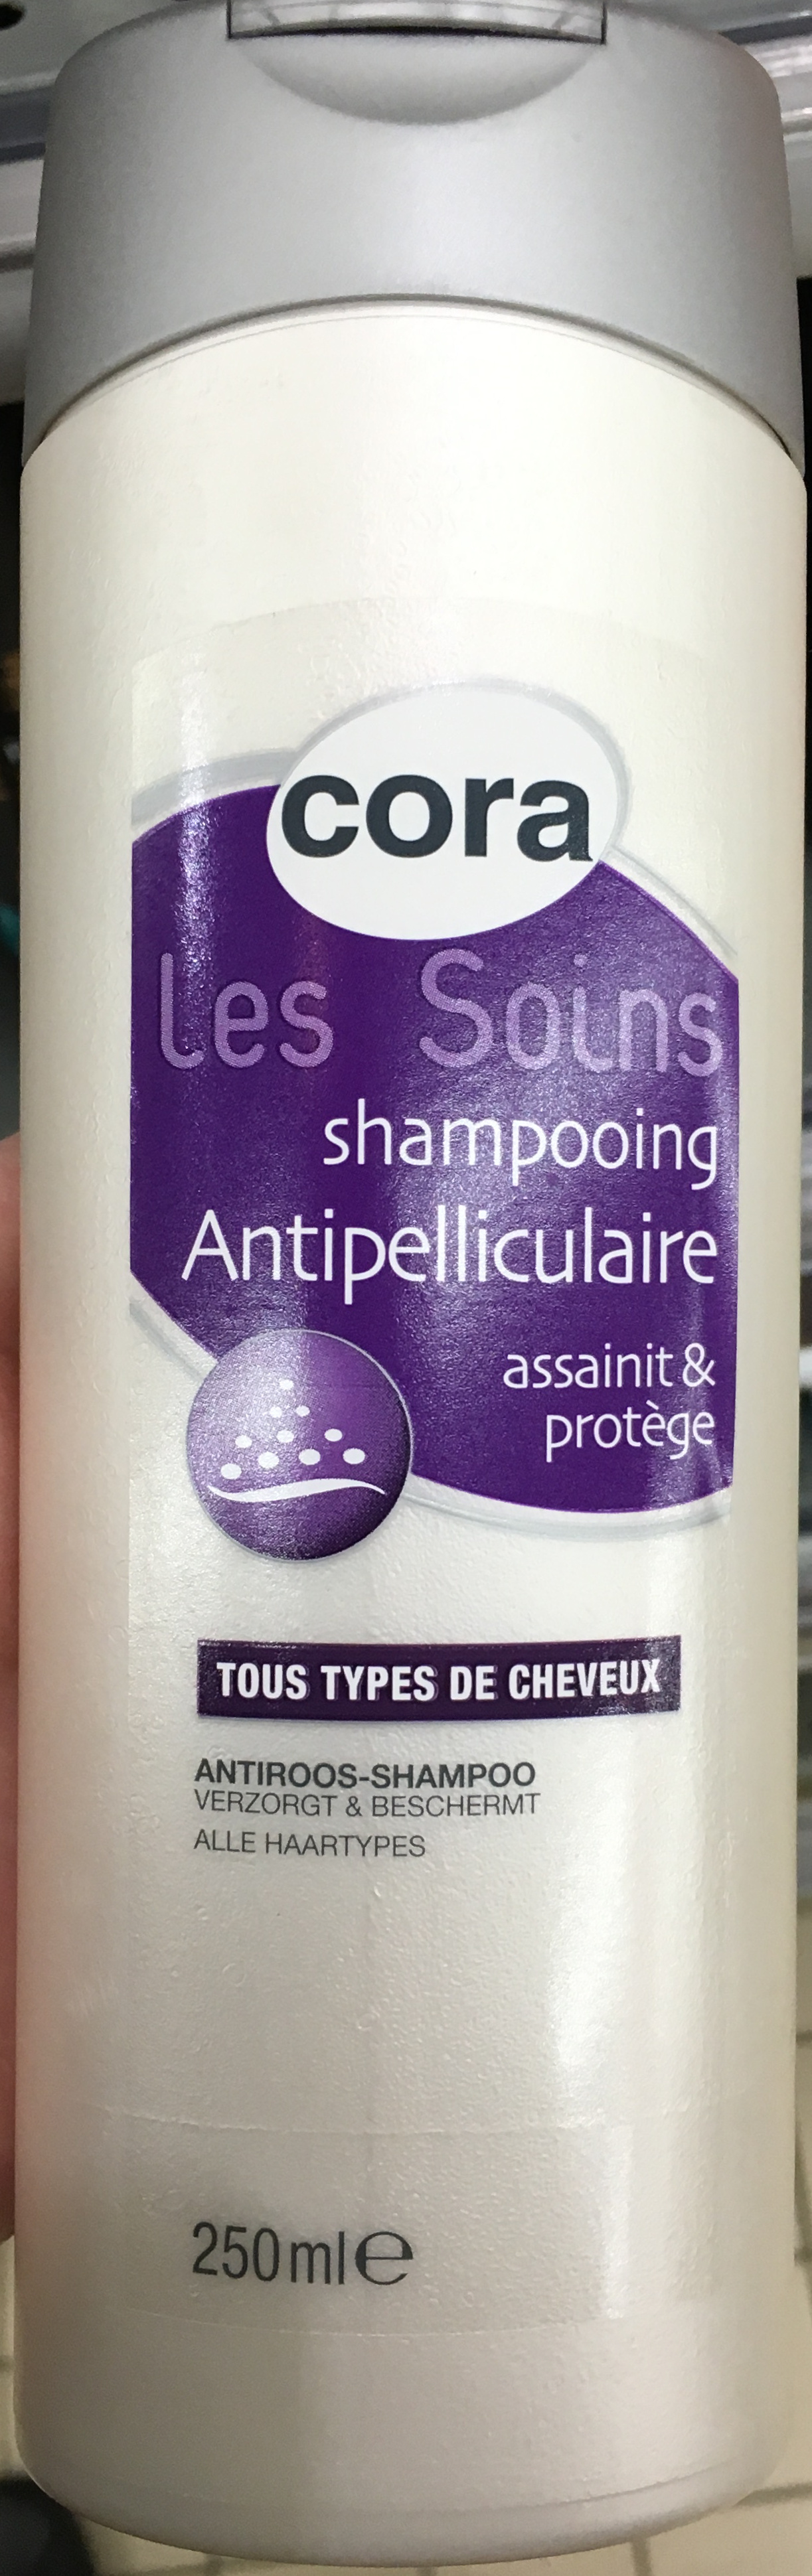 Les Soins Shampooing antipelliculaire - Product